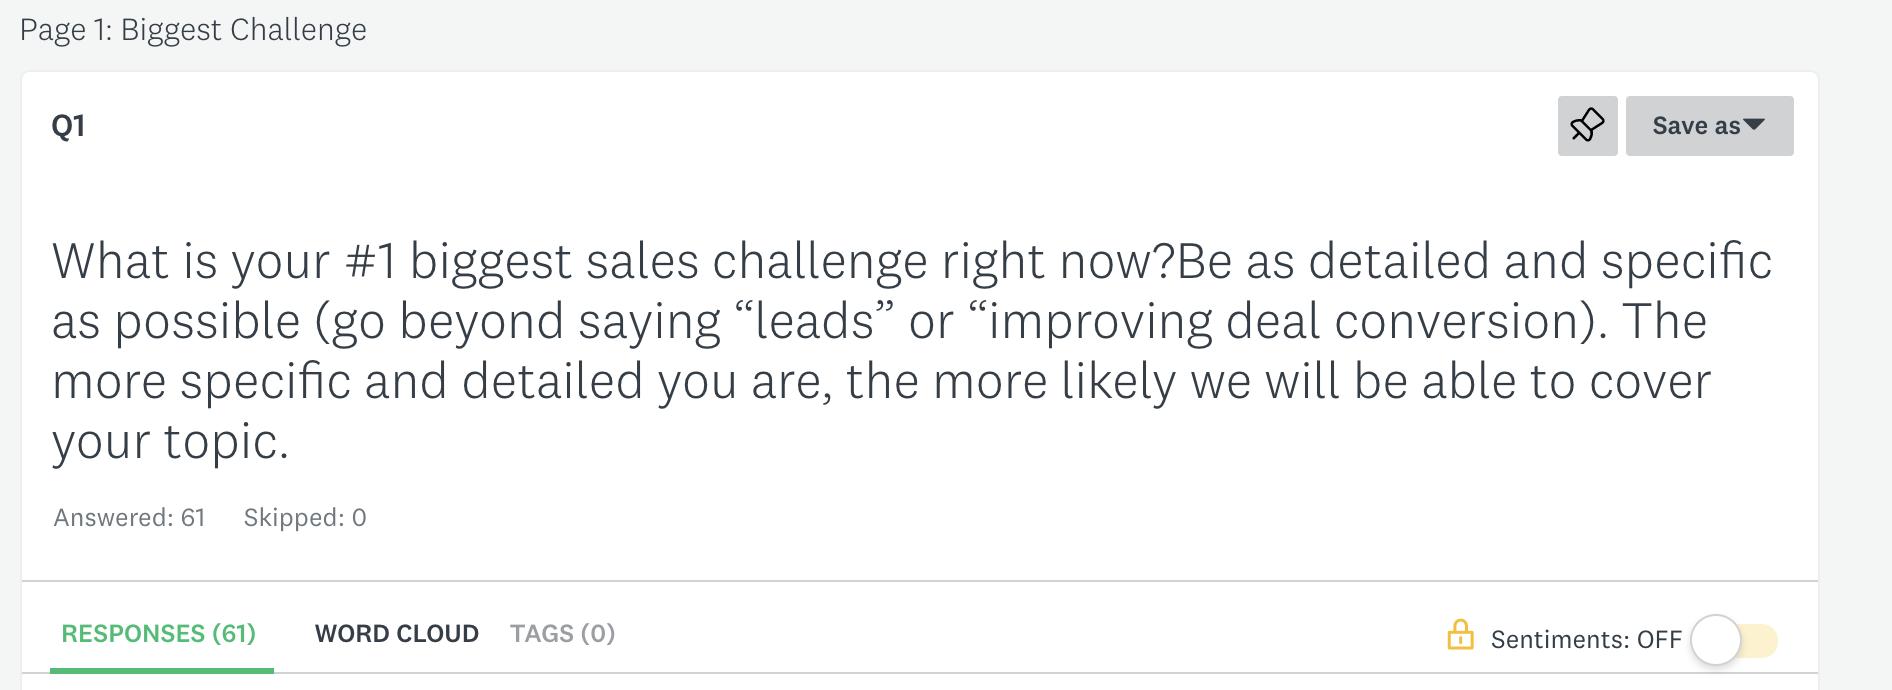 uncovering customer pain points with survey question: biggest sales challenge